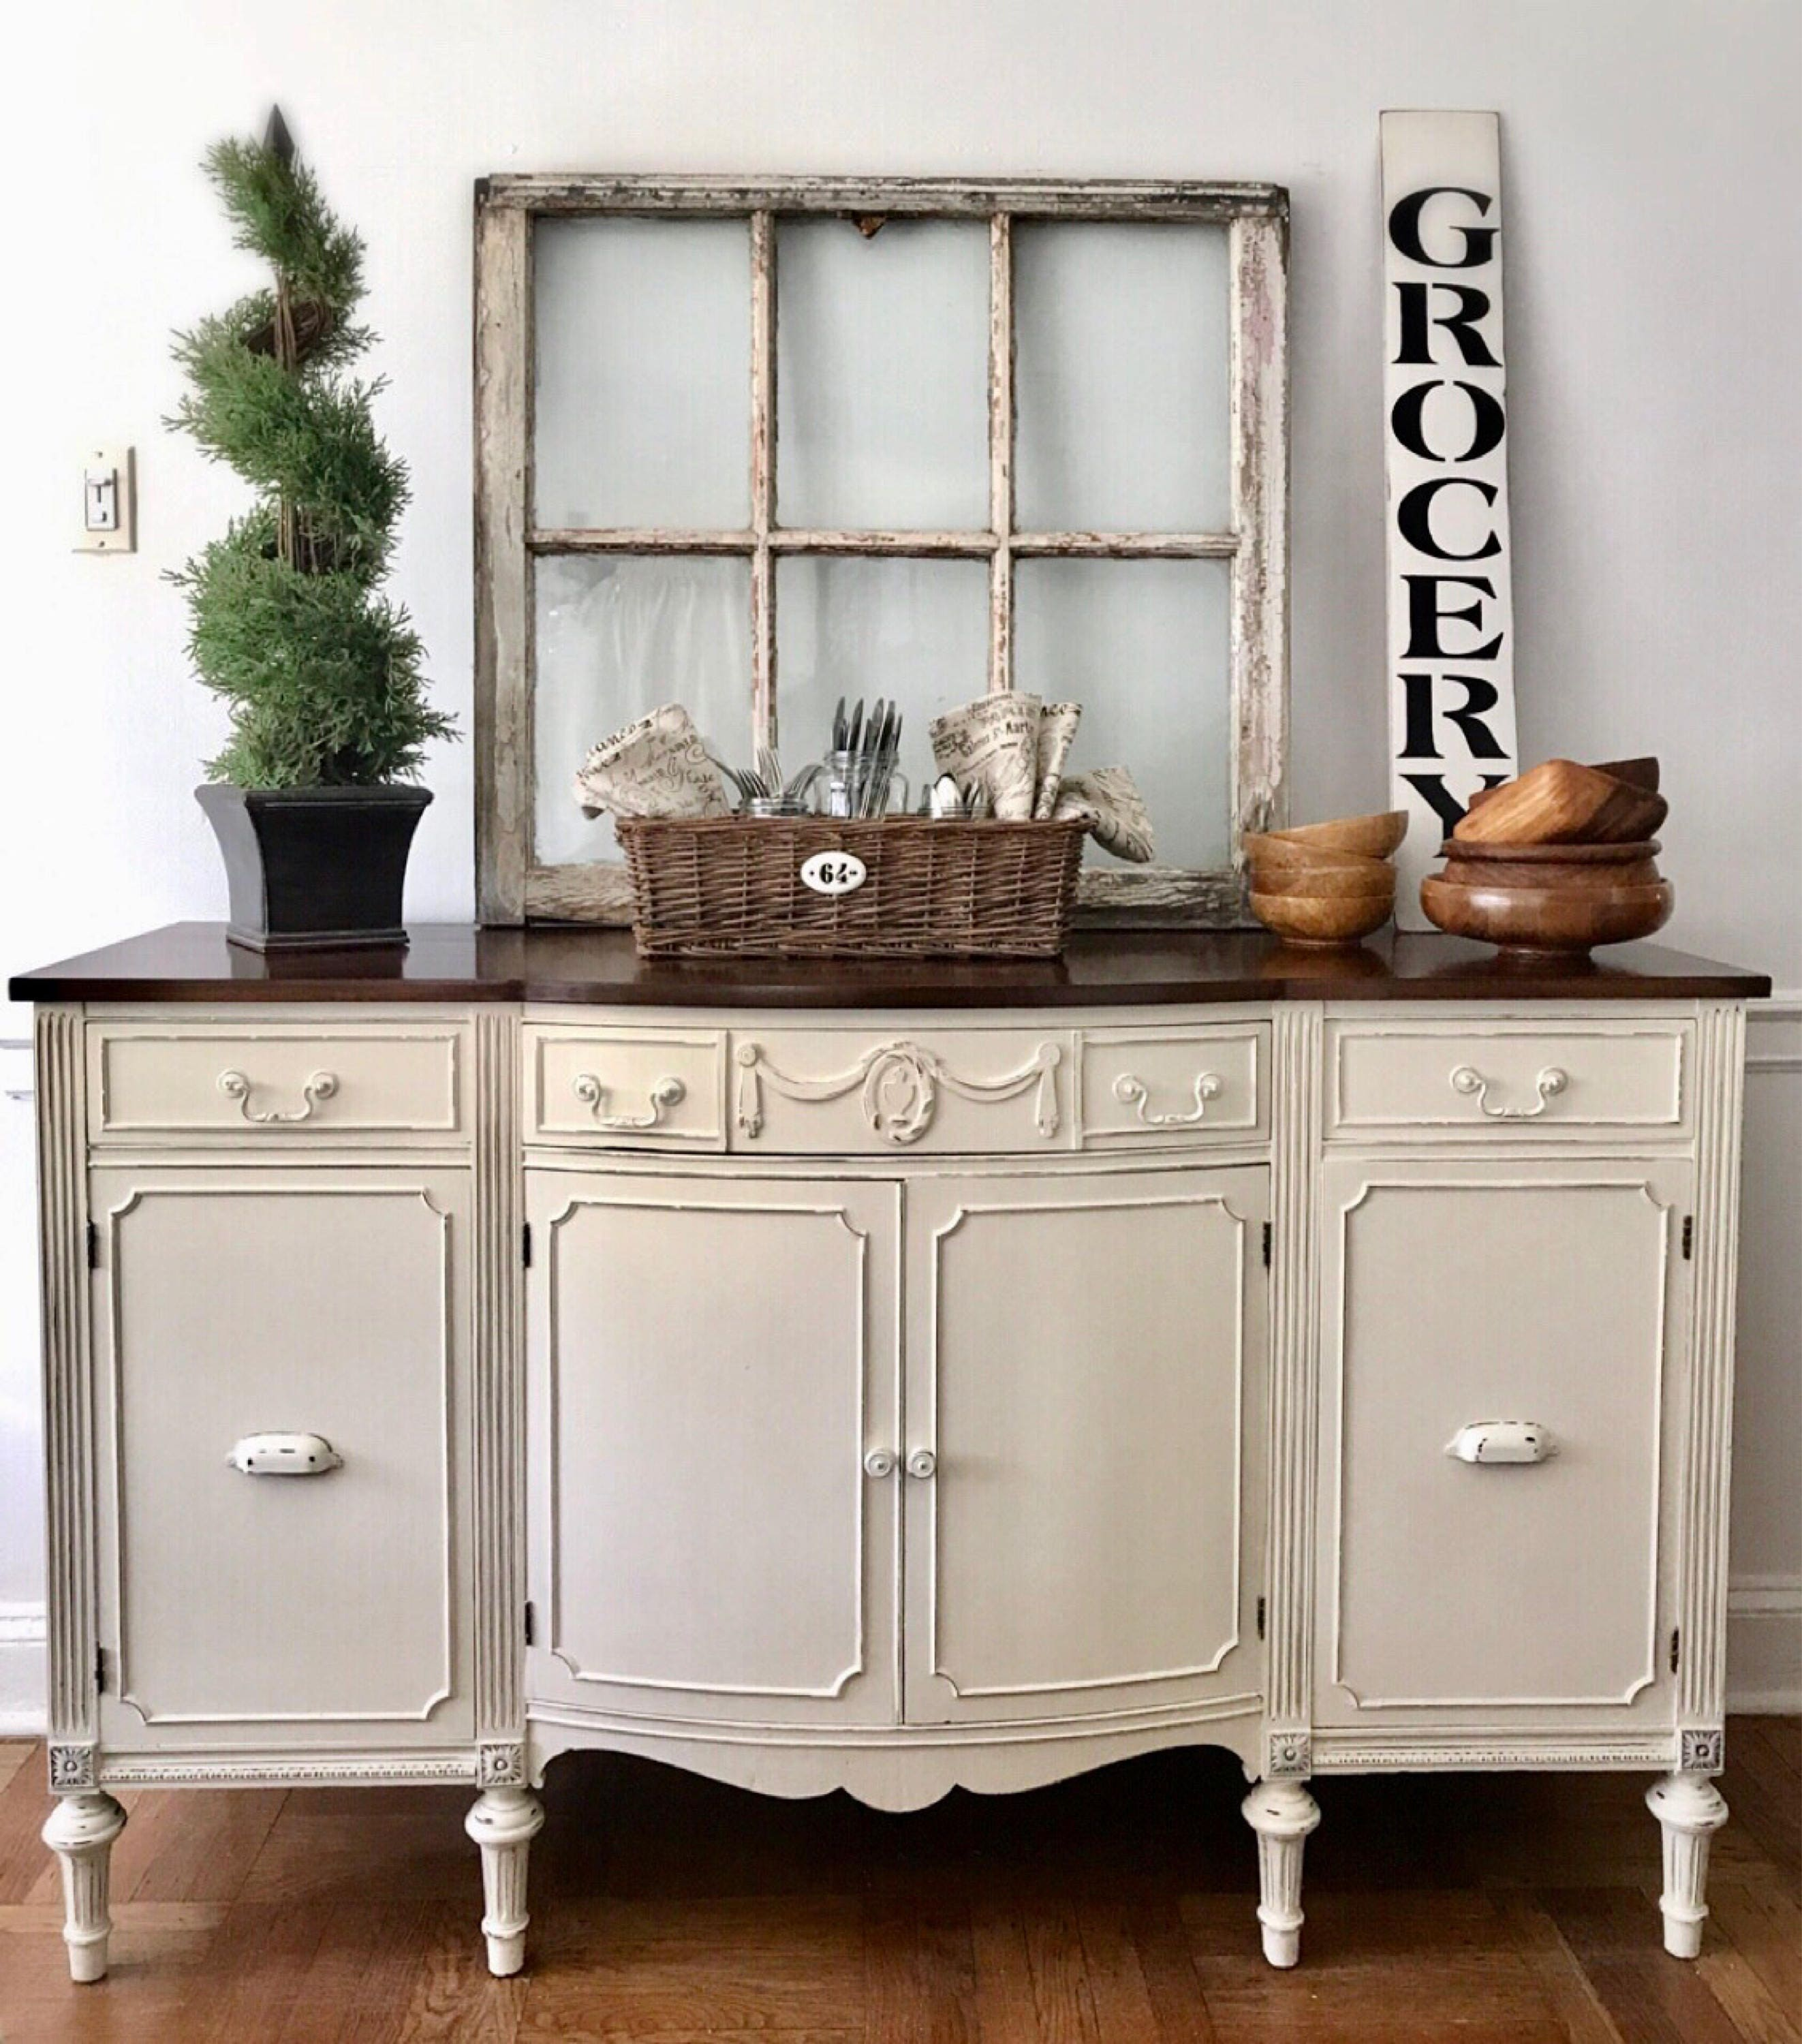 Sold vintage buffet vintage sideboard farmhouse for Painted buffet sideboard